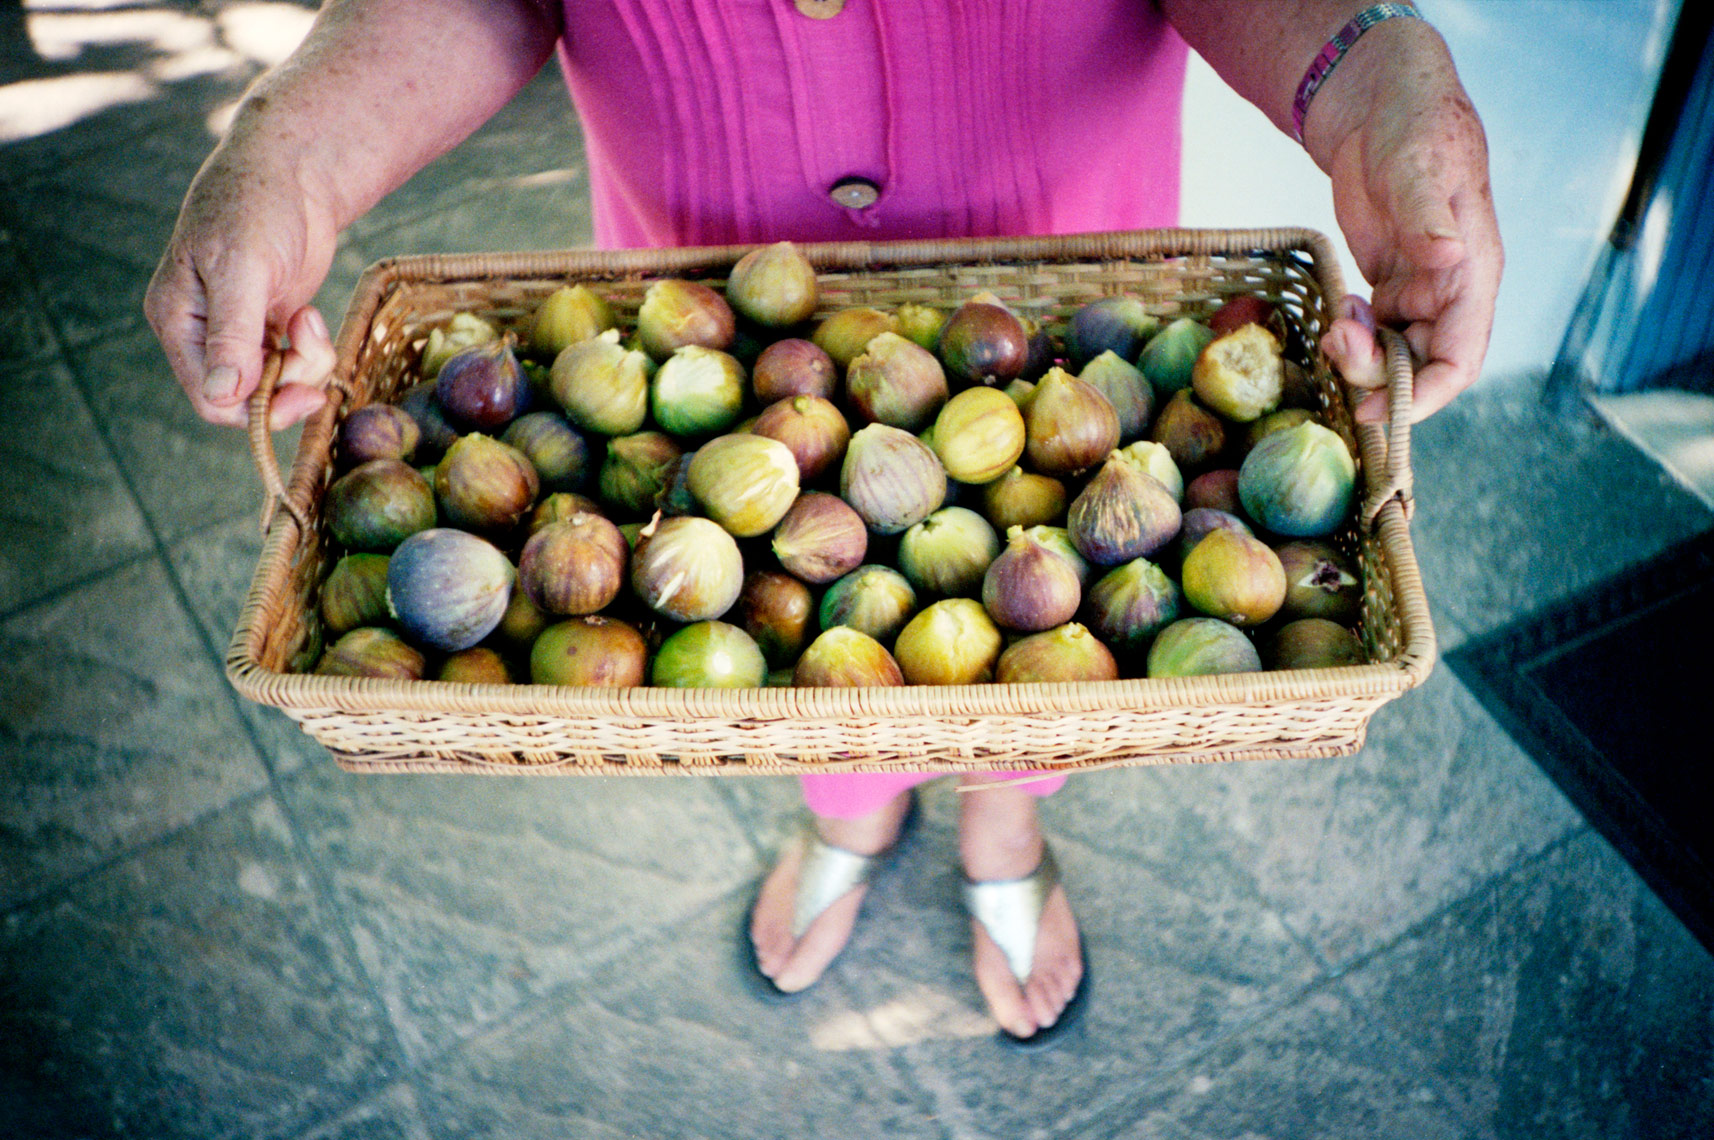 figs on trullo farm, Apulia summer, Webb Chappell